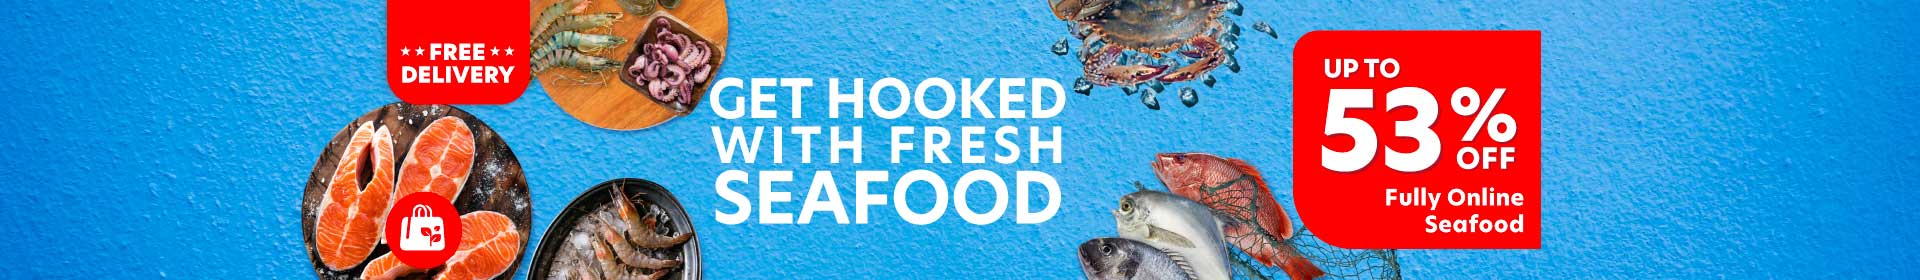 Up to 53% off on Sea Food